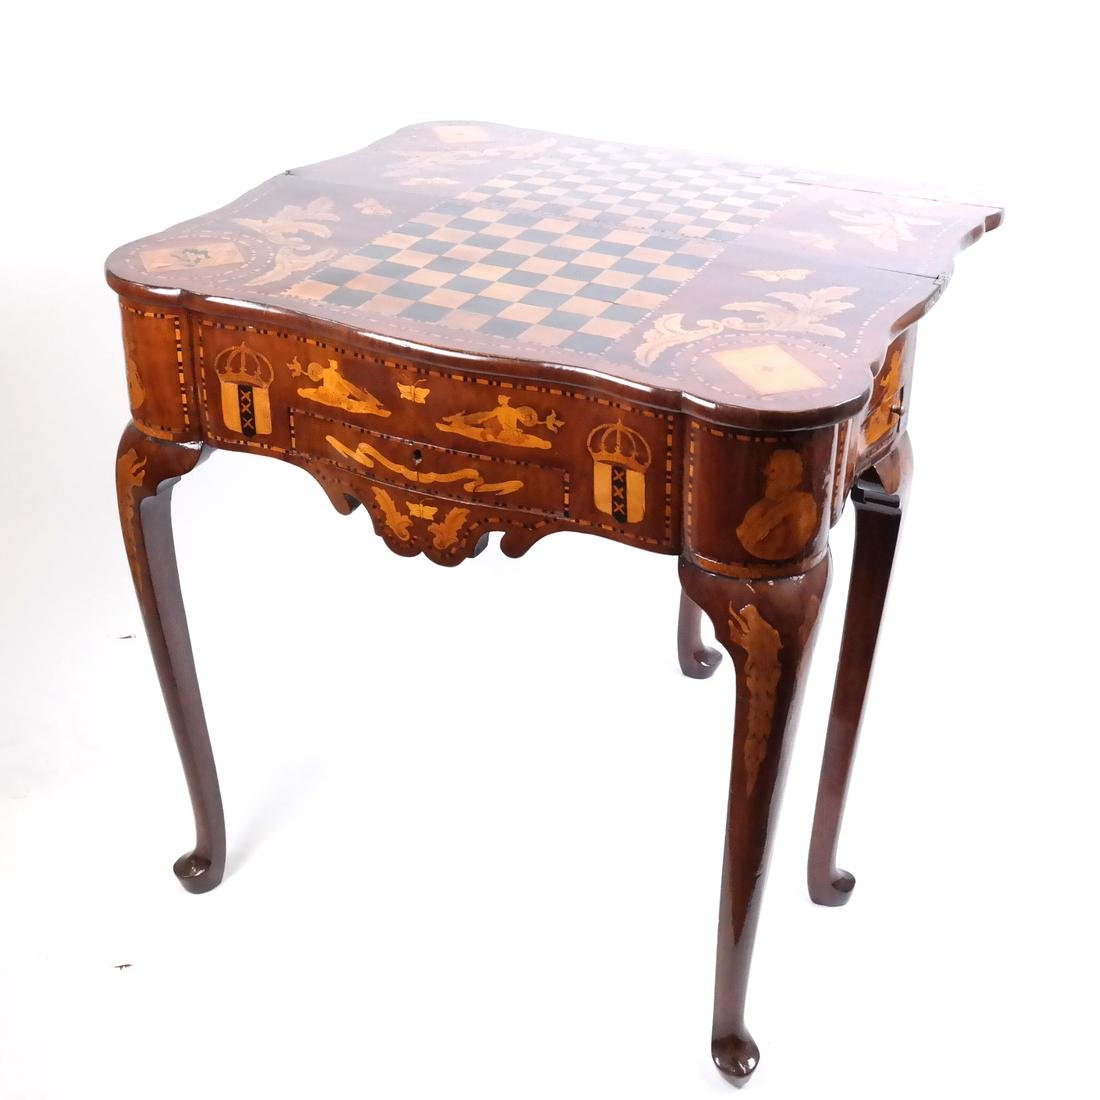 Antique Continental Games Table - 3